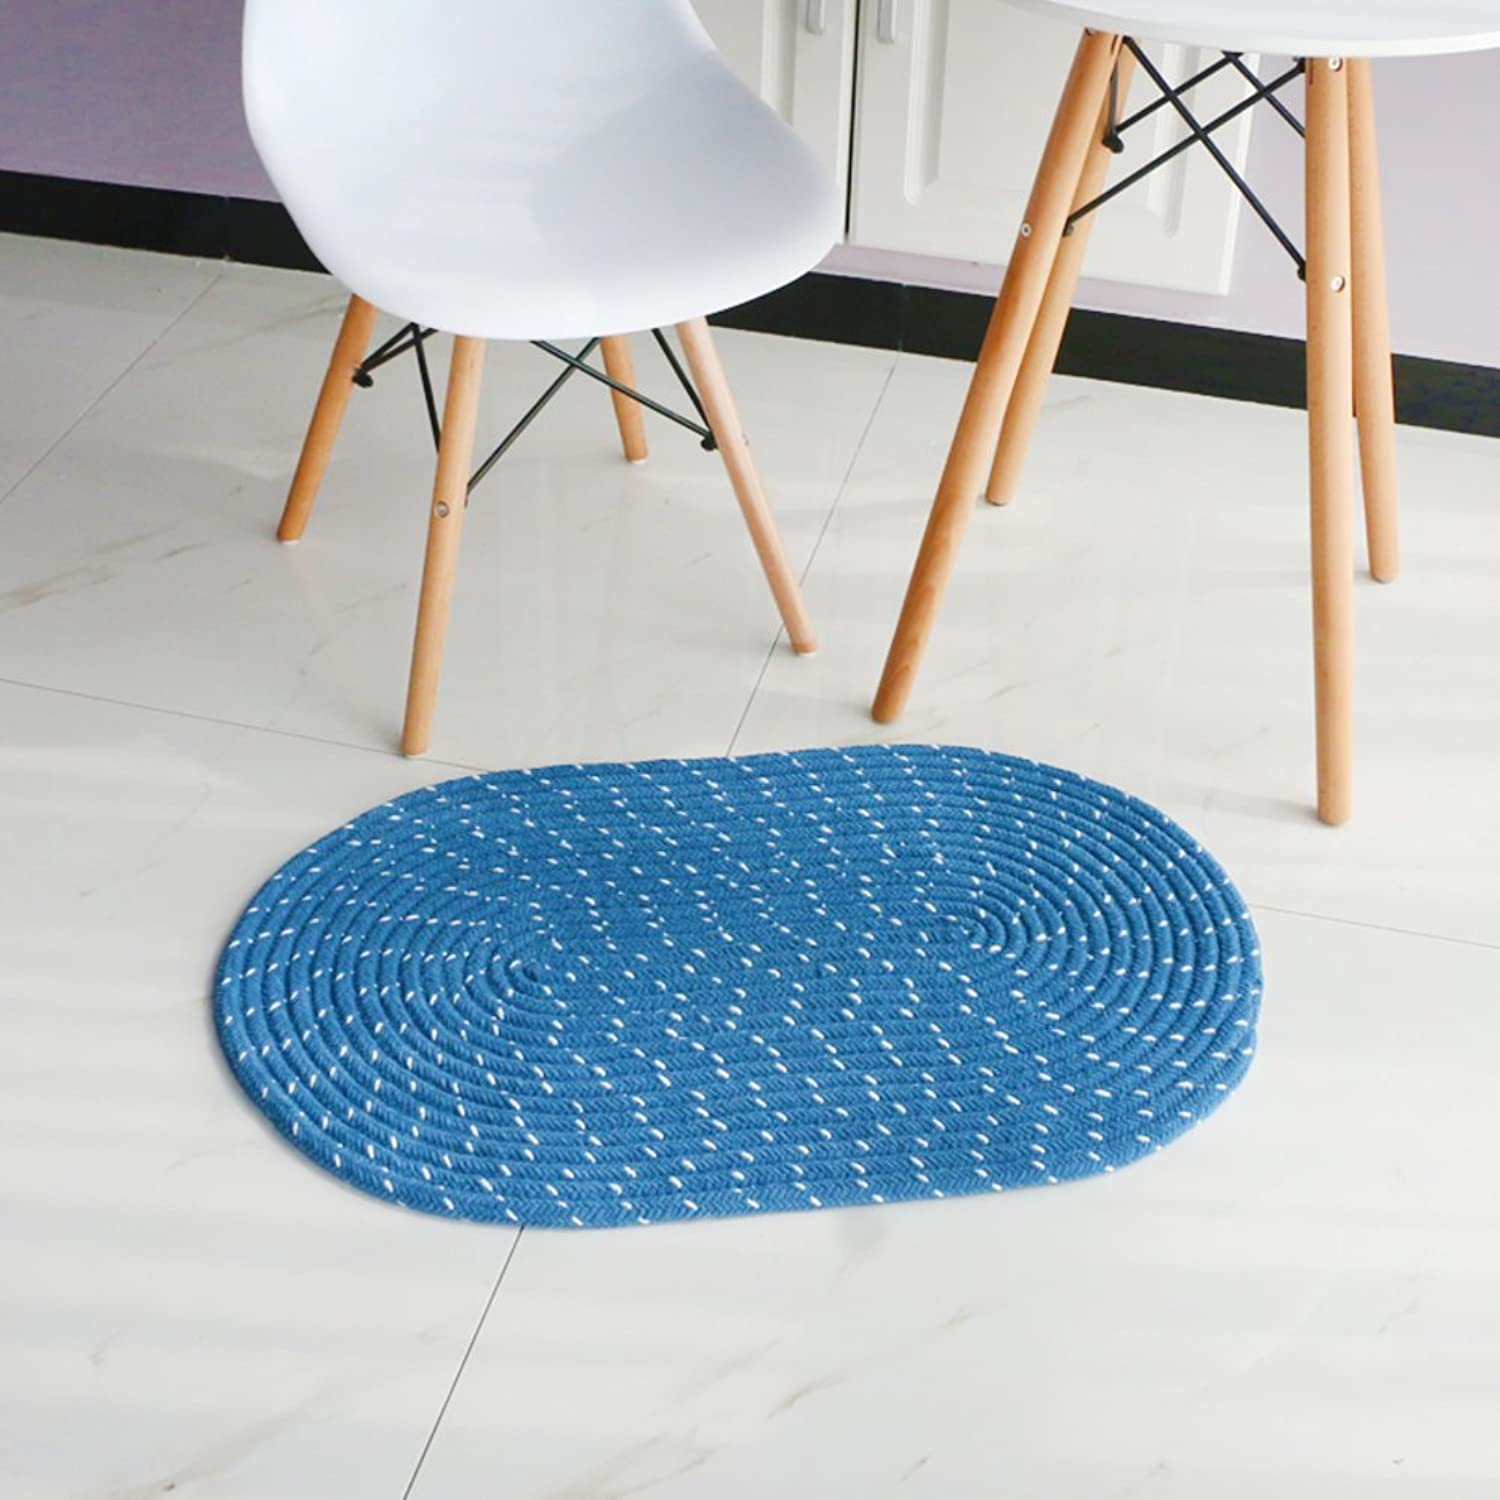 Chenille Weave Round Carpet Living Room Bedroom [Study] Hanging Basket Computer Chair mat Bedroom-E 50x120cm(20x47inch)